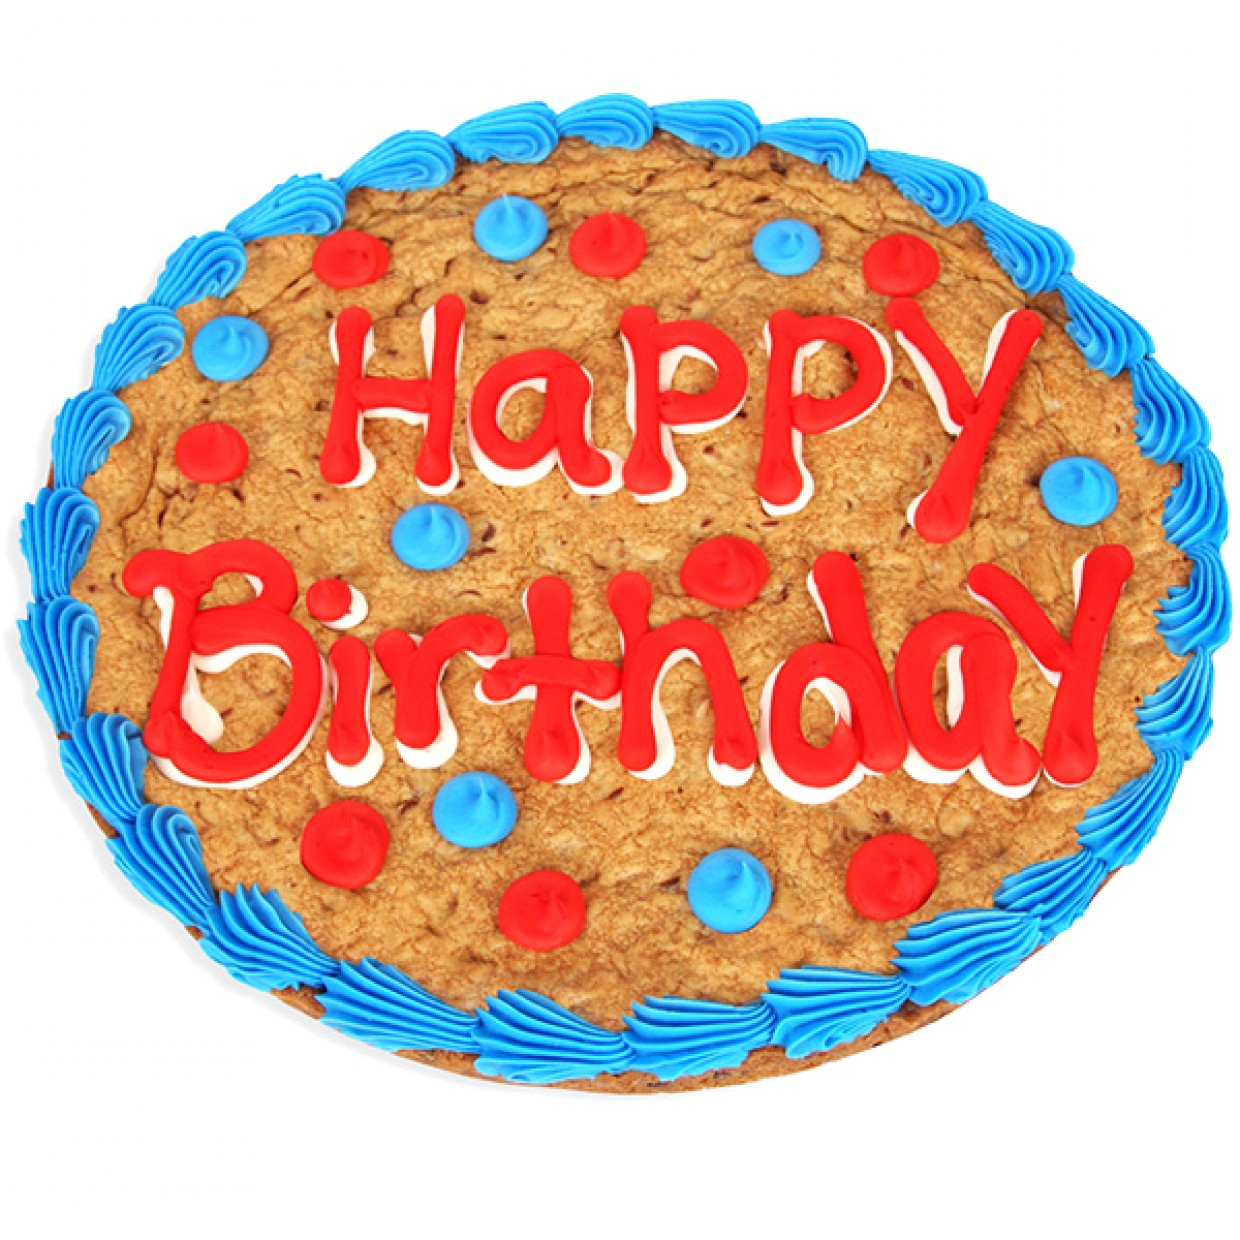 Happy Birthday Cookie Cake Happy Birthday Cookie Cake Best Reference Gift Ideas Party Decor